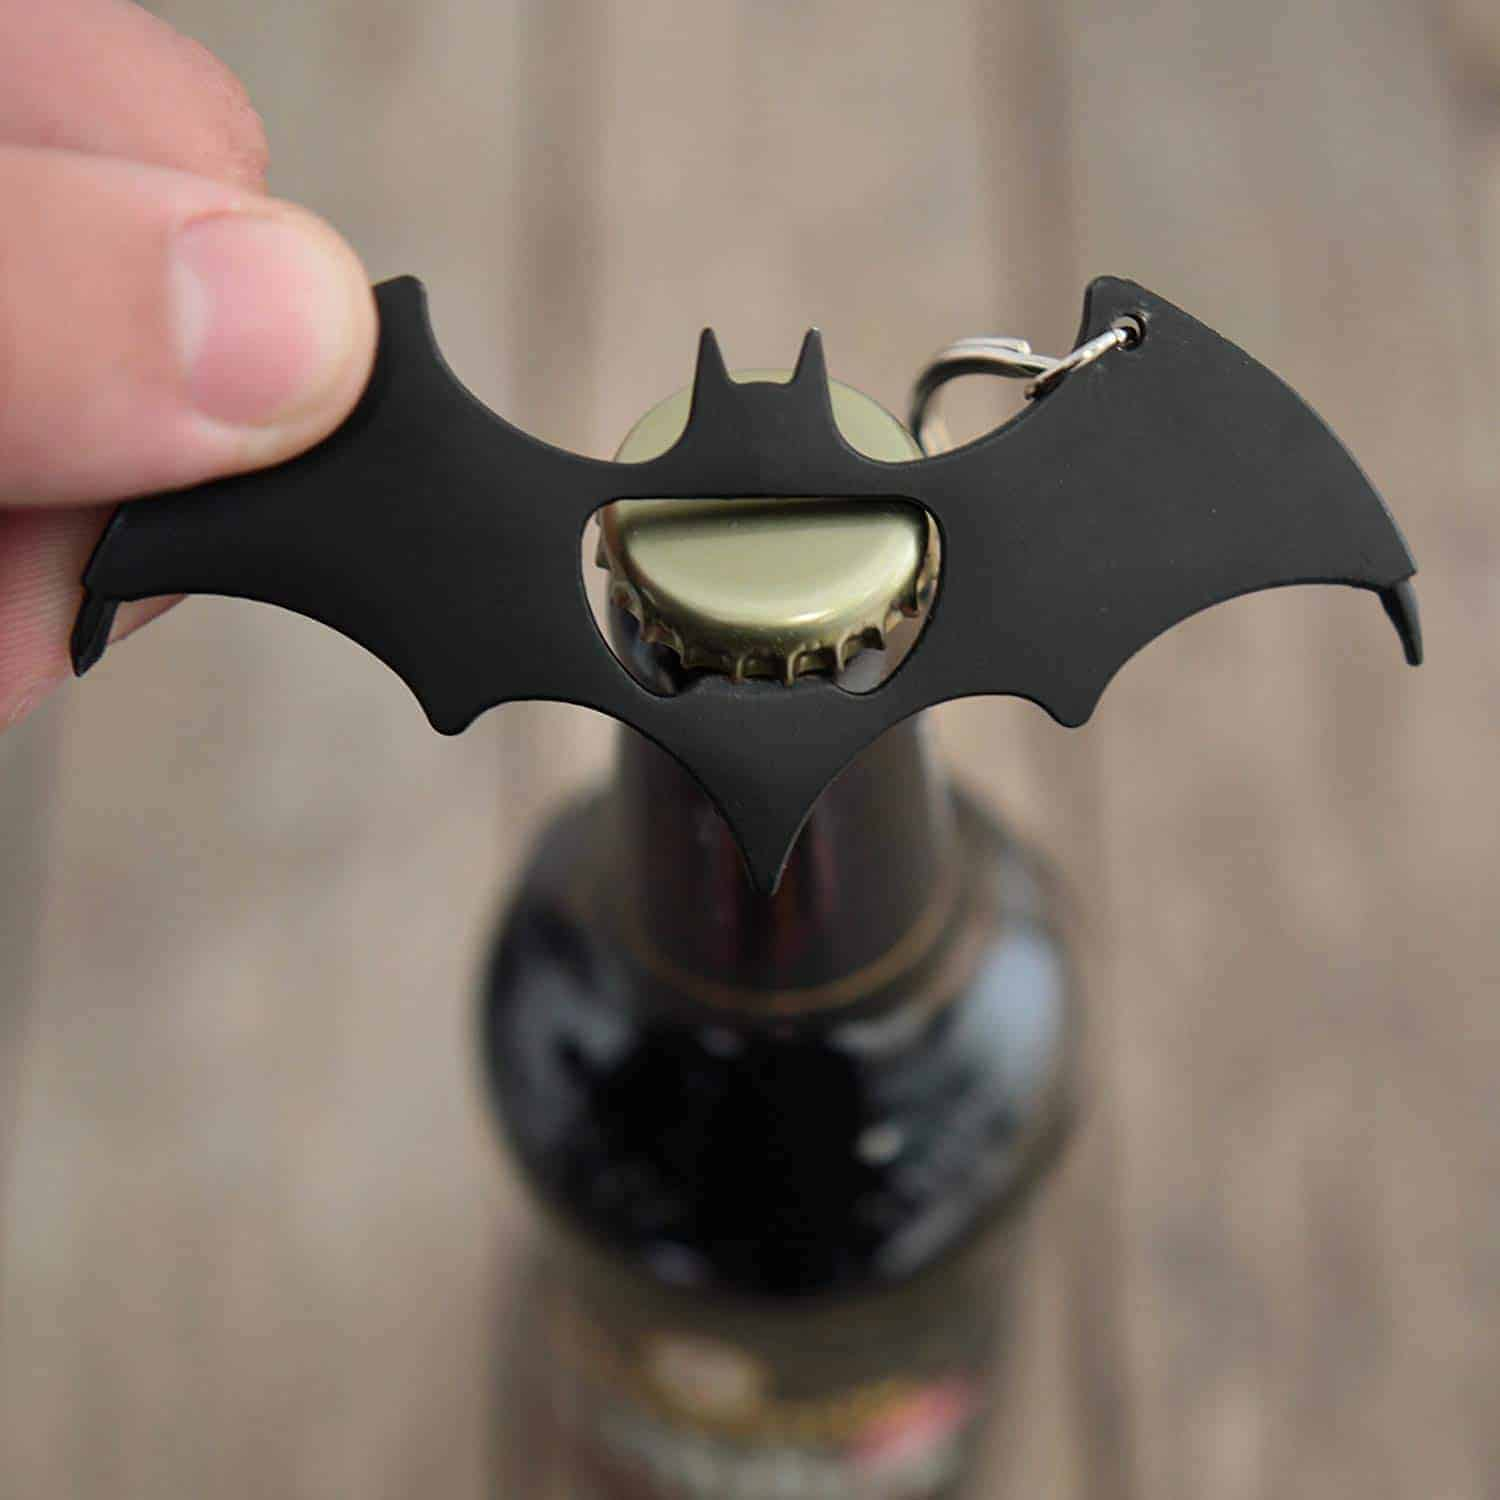 20 Coolest Bottle Openers You Can Buy For Your Home Bar 29